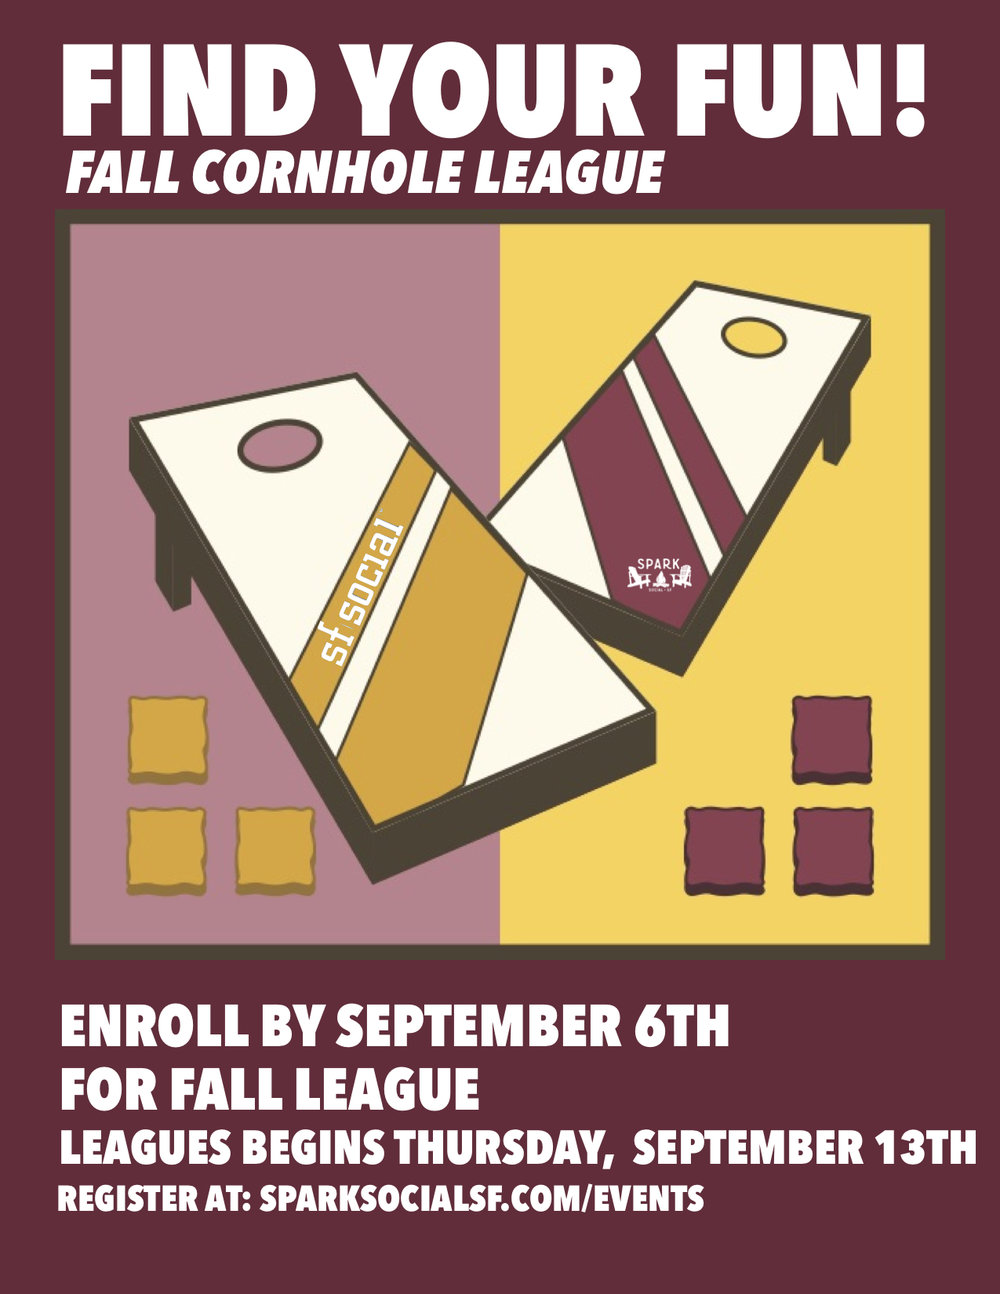 Fall Cornhole League.jpg